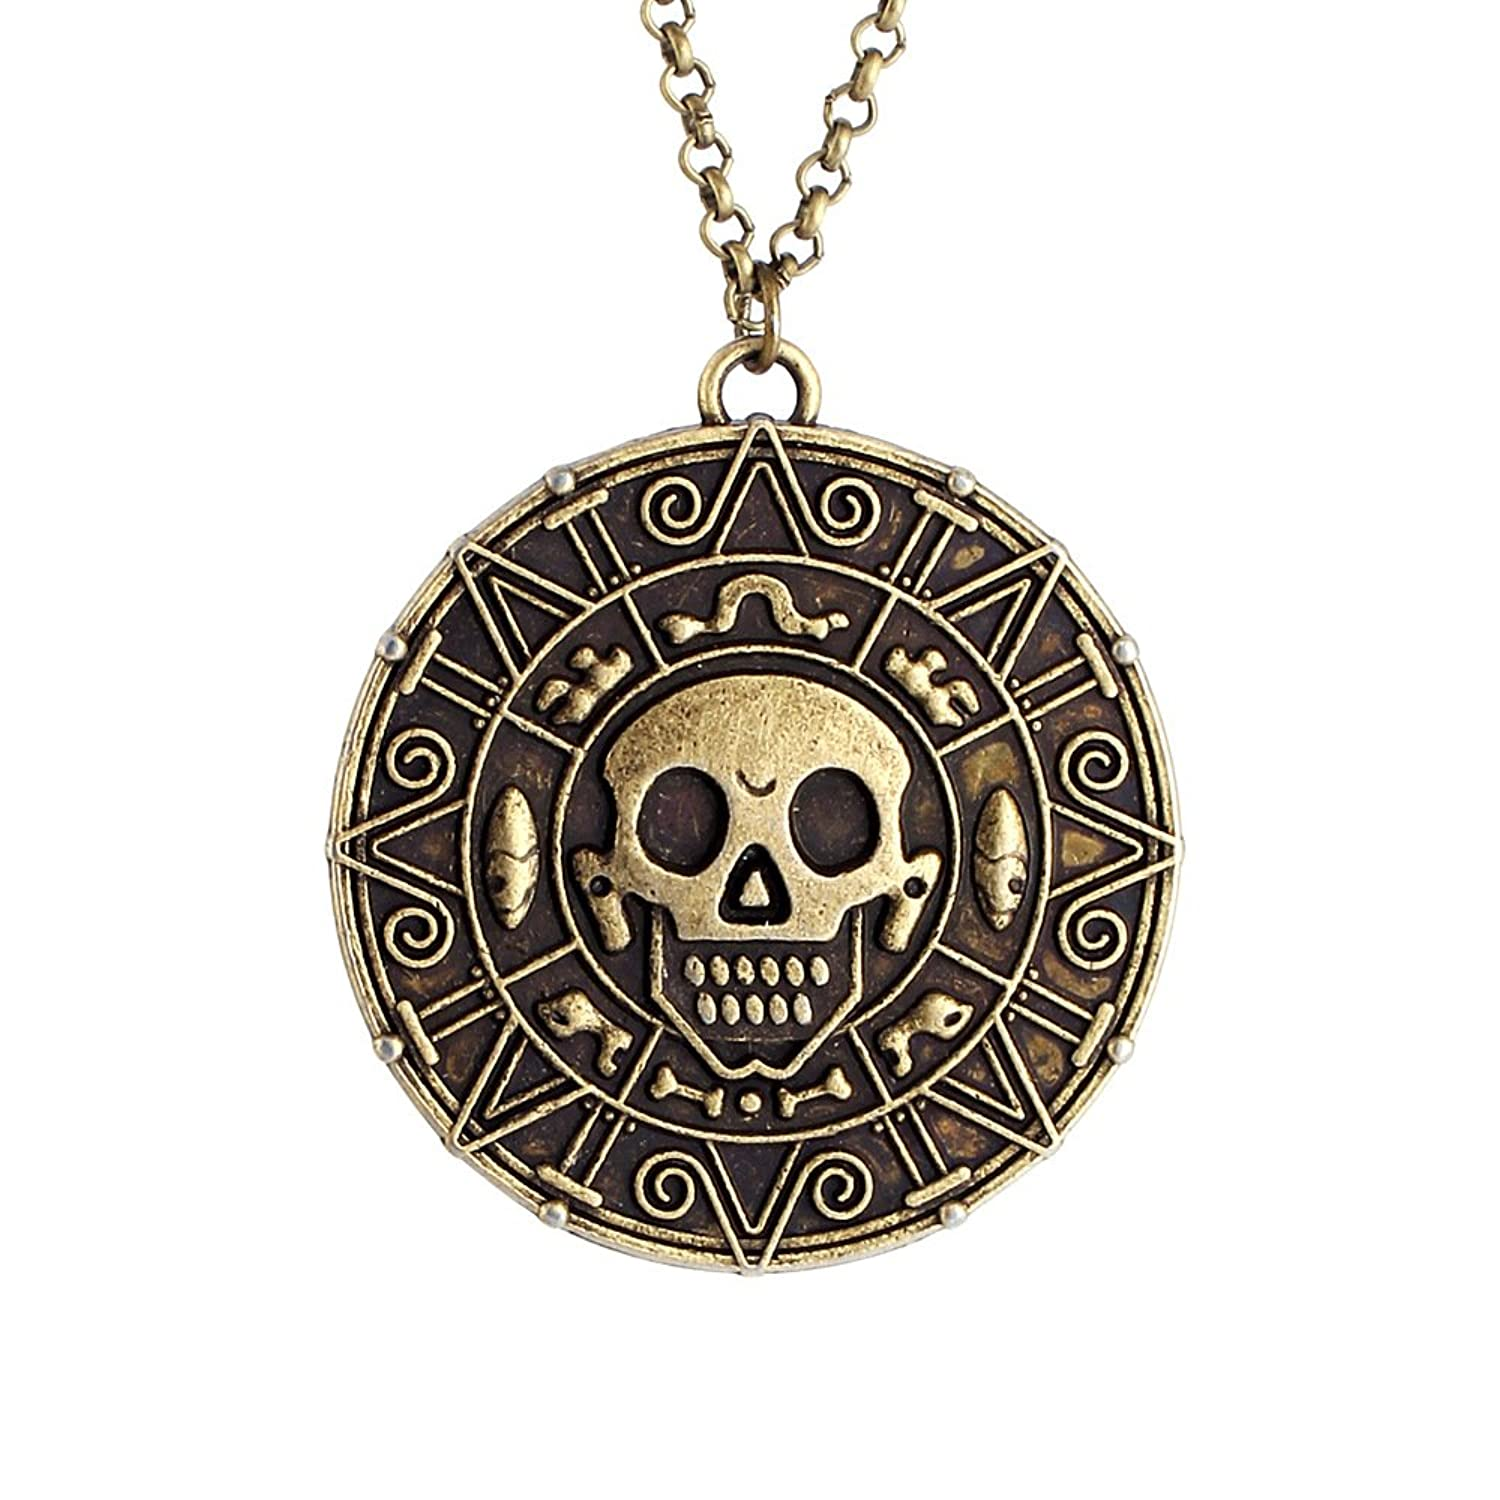 Deluxe Adult Costumes - Men's Antique bronze Aztec coin medallion skull necklace